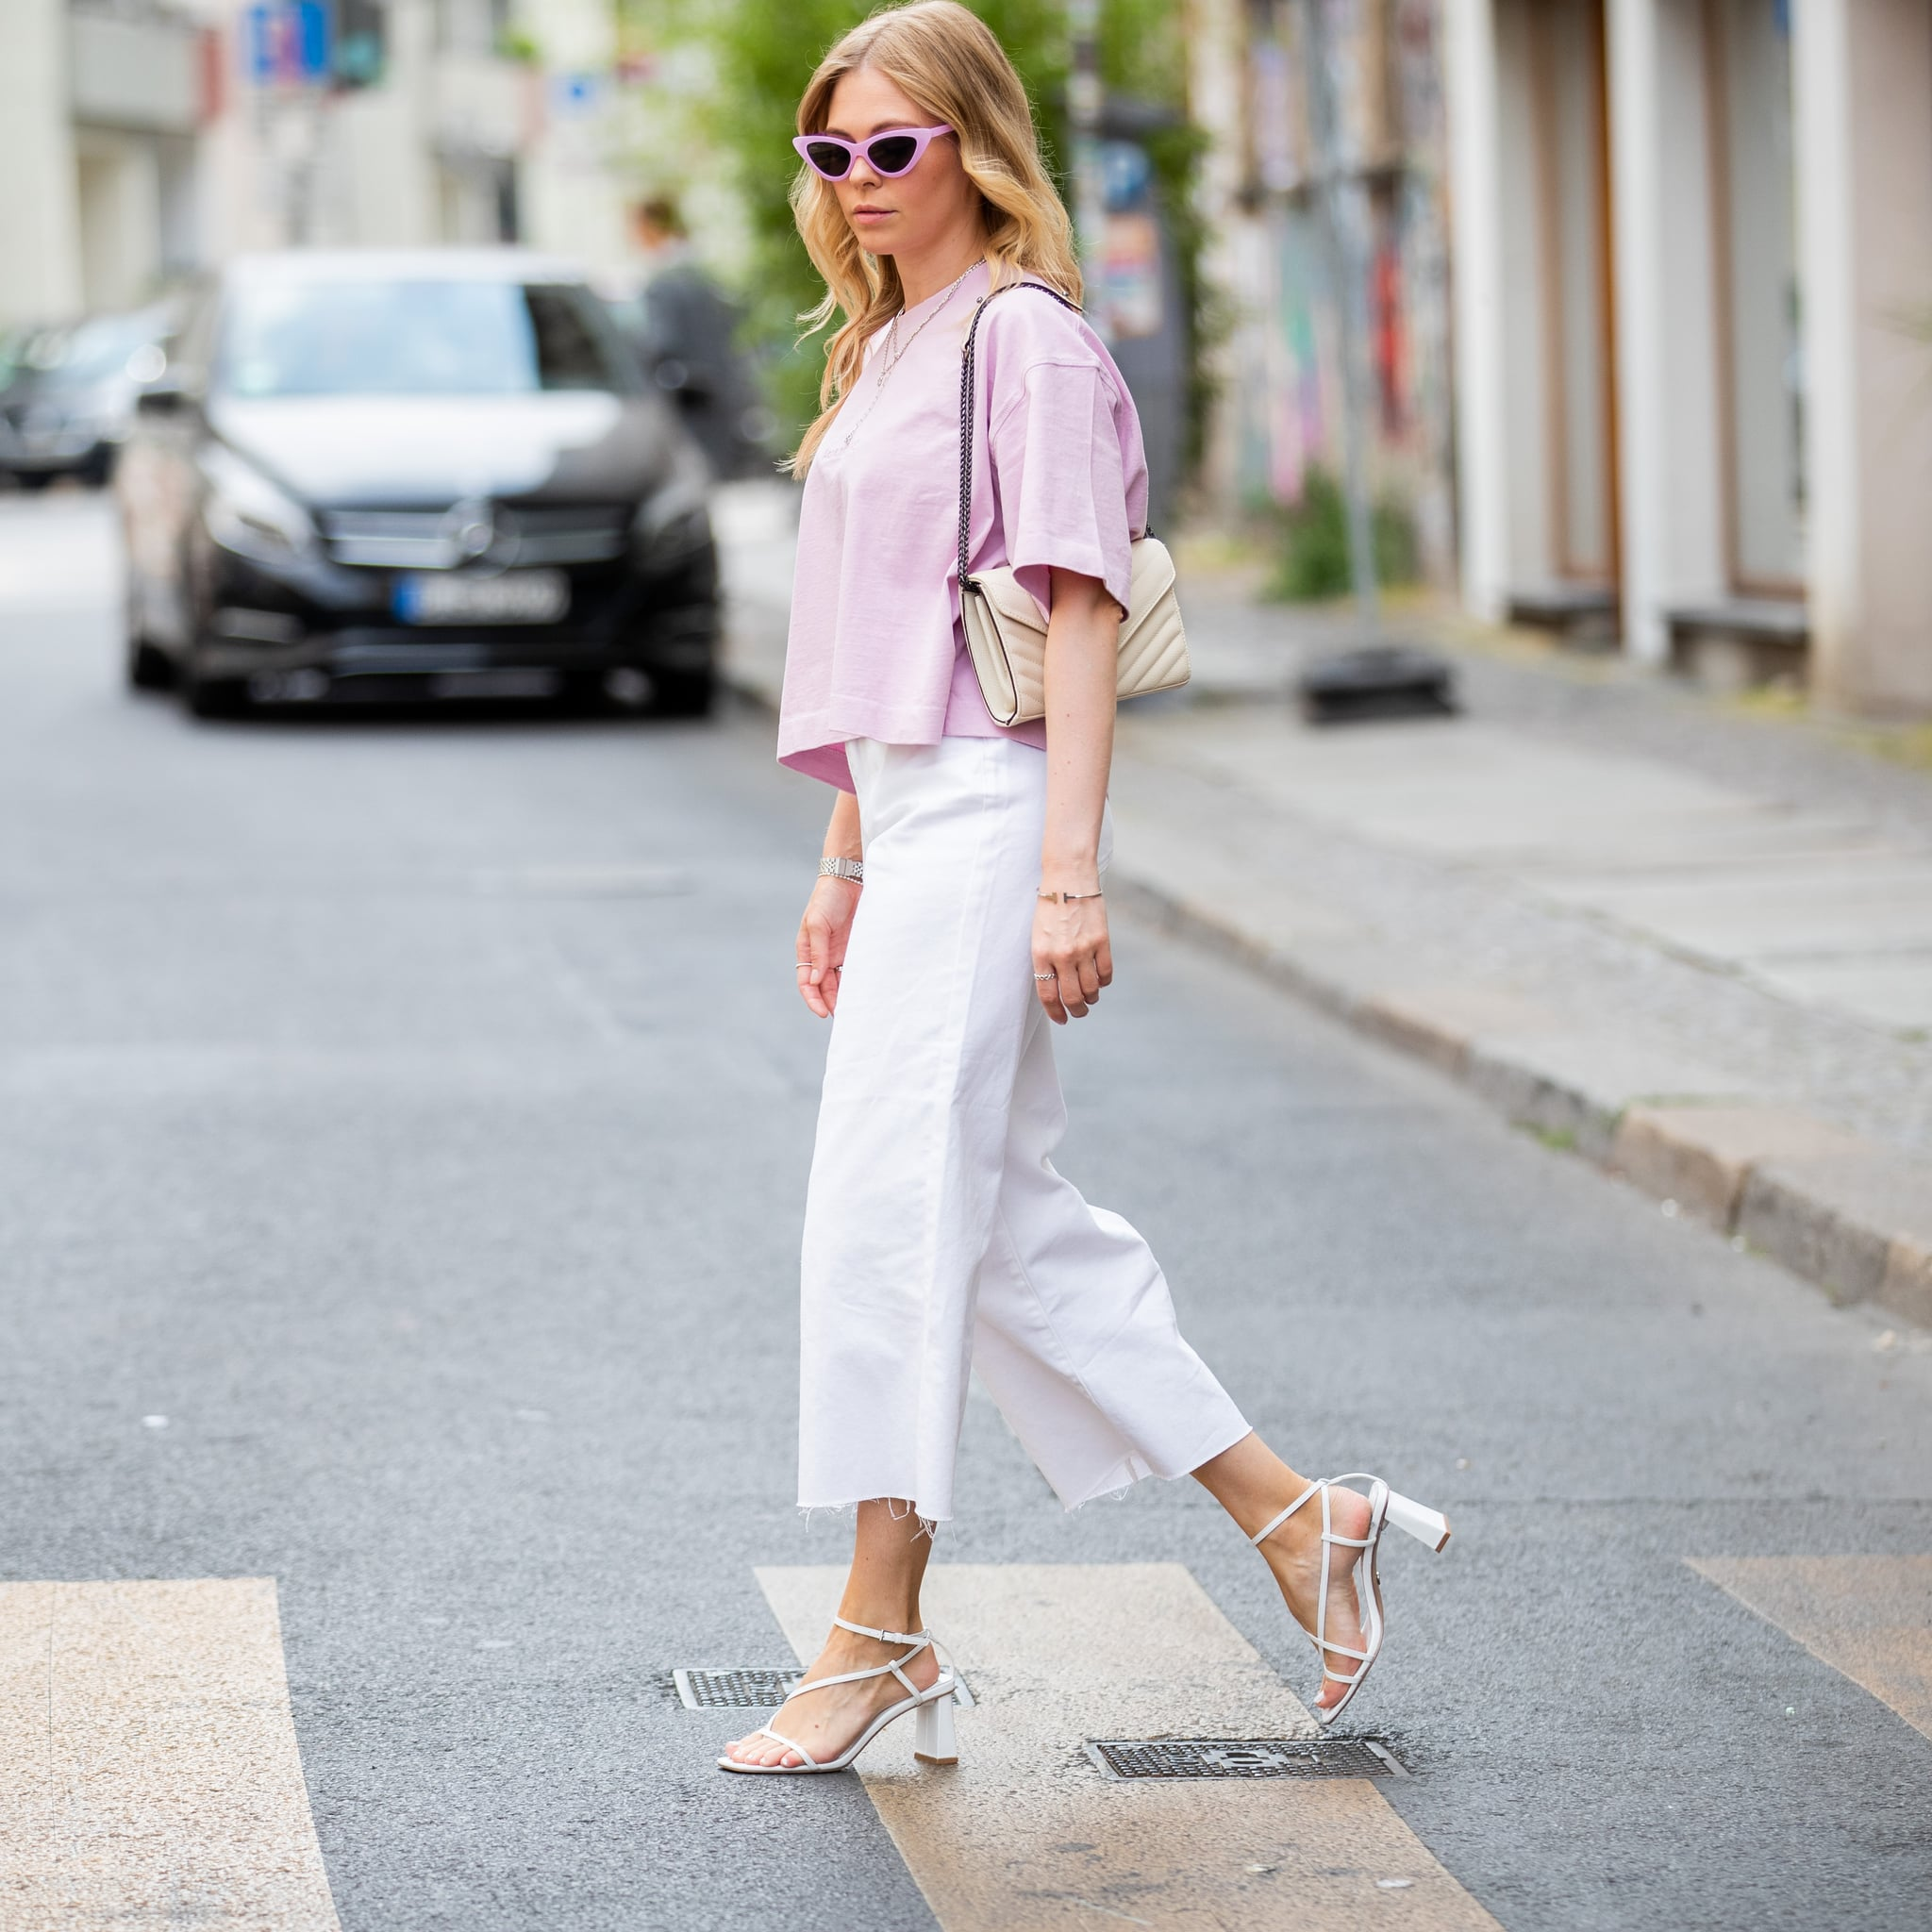 How to Wear Jeans and Sandals | POPSUGAR Fashion Australia